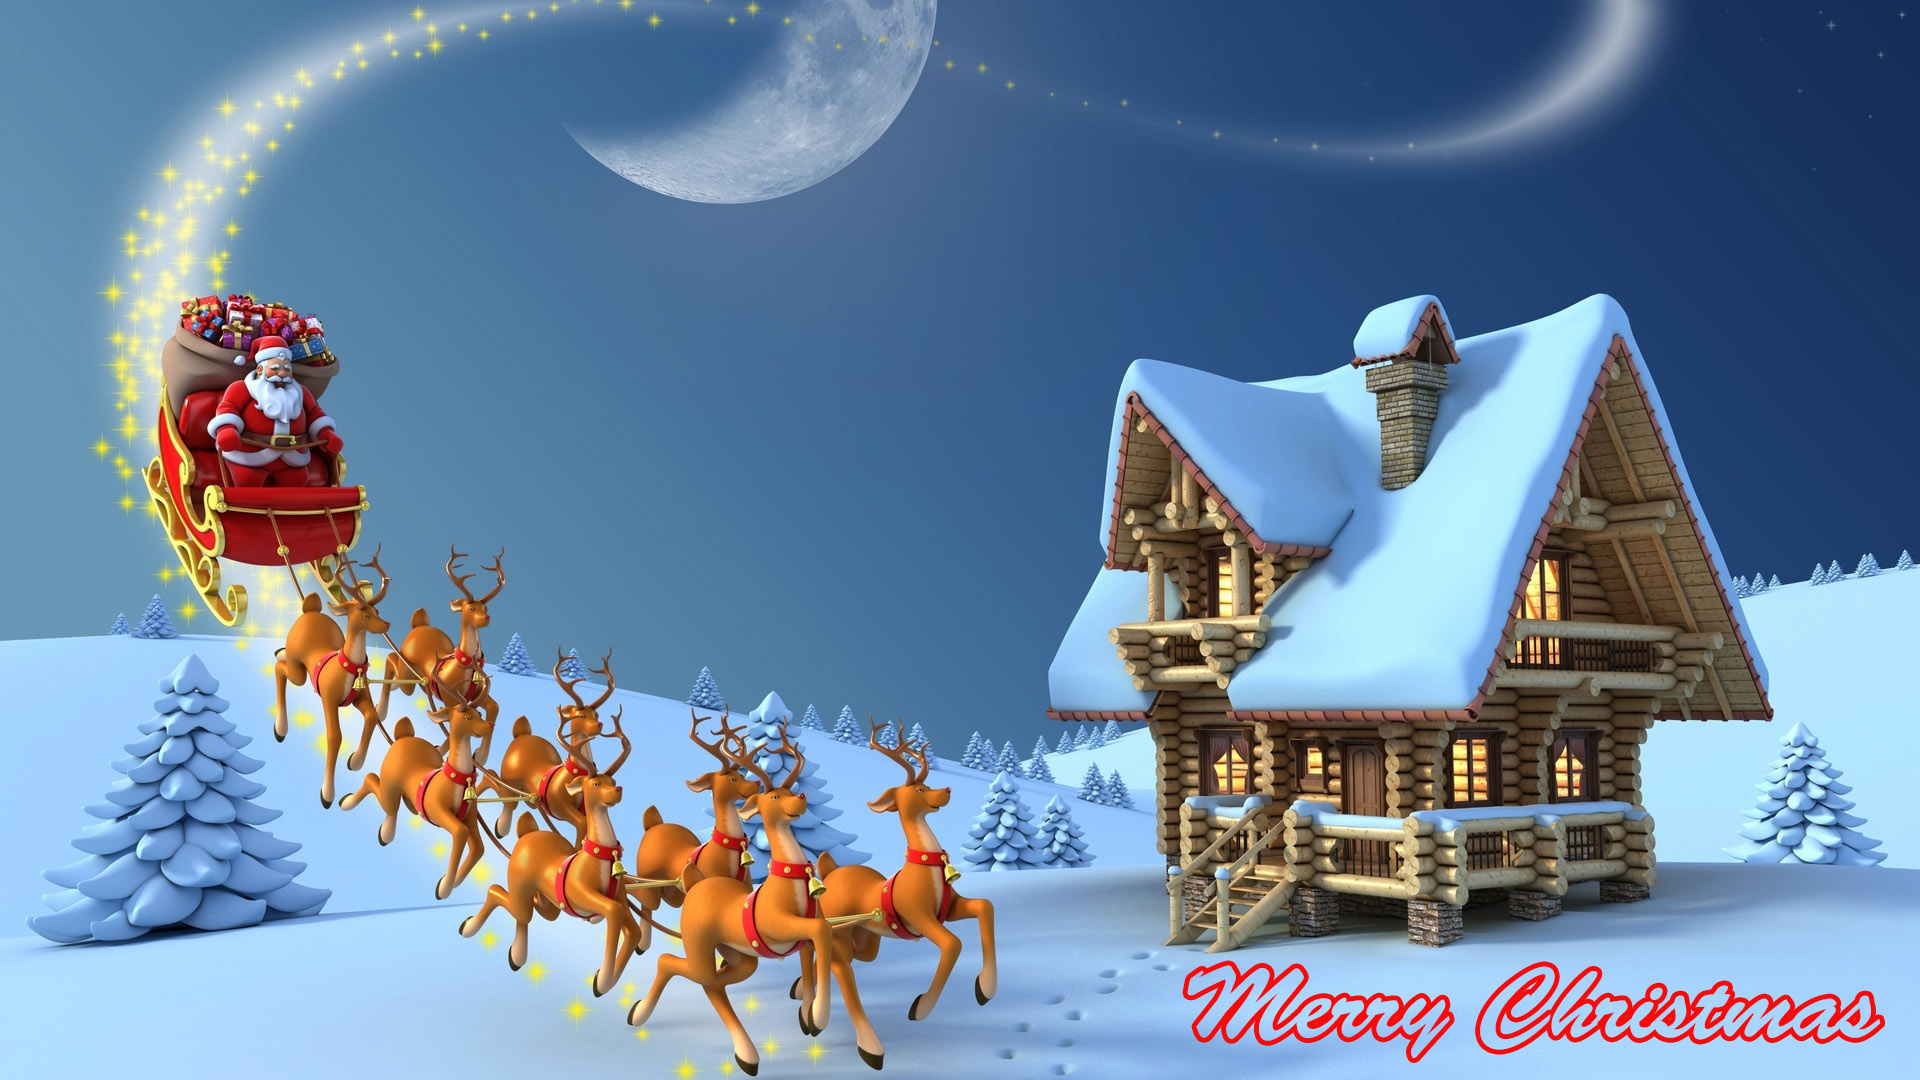 Christmas Images Photos Hd Wallpaper Pictures Download